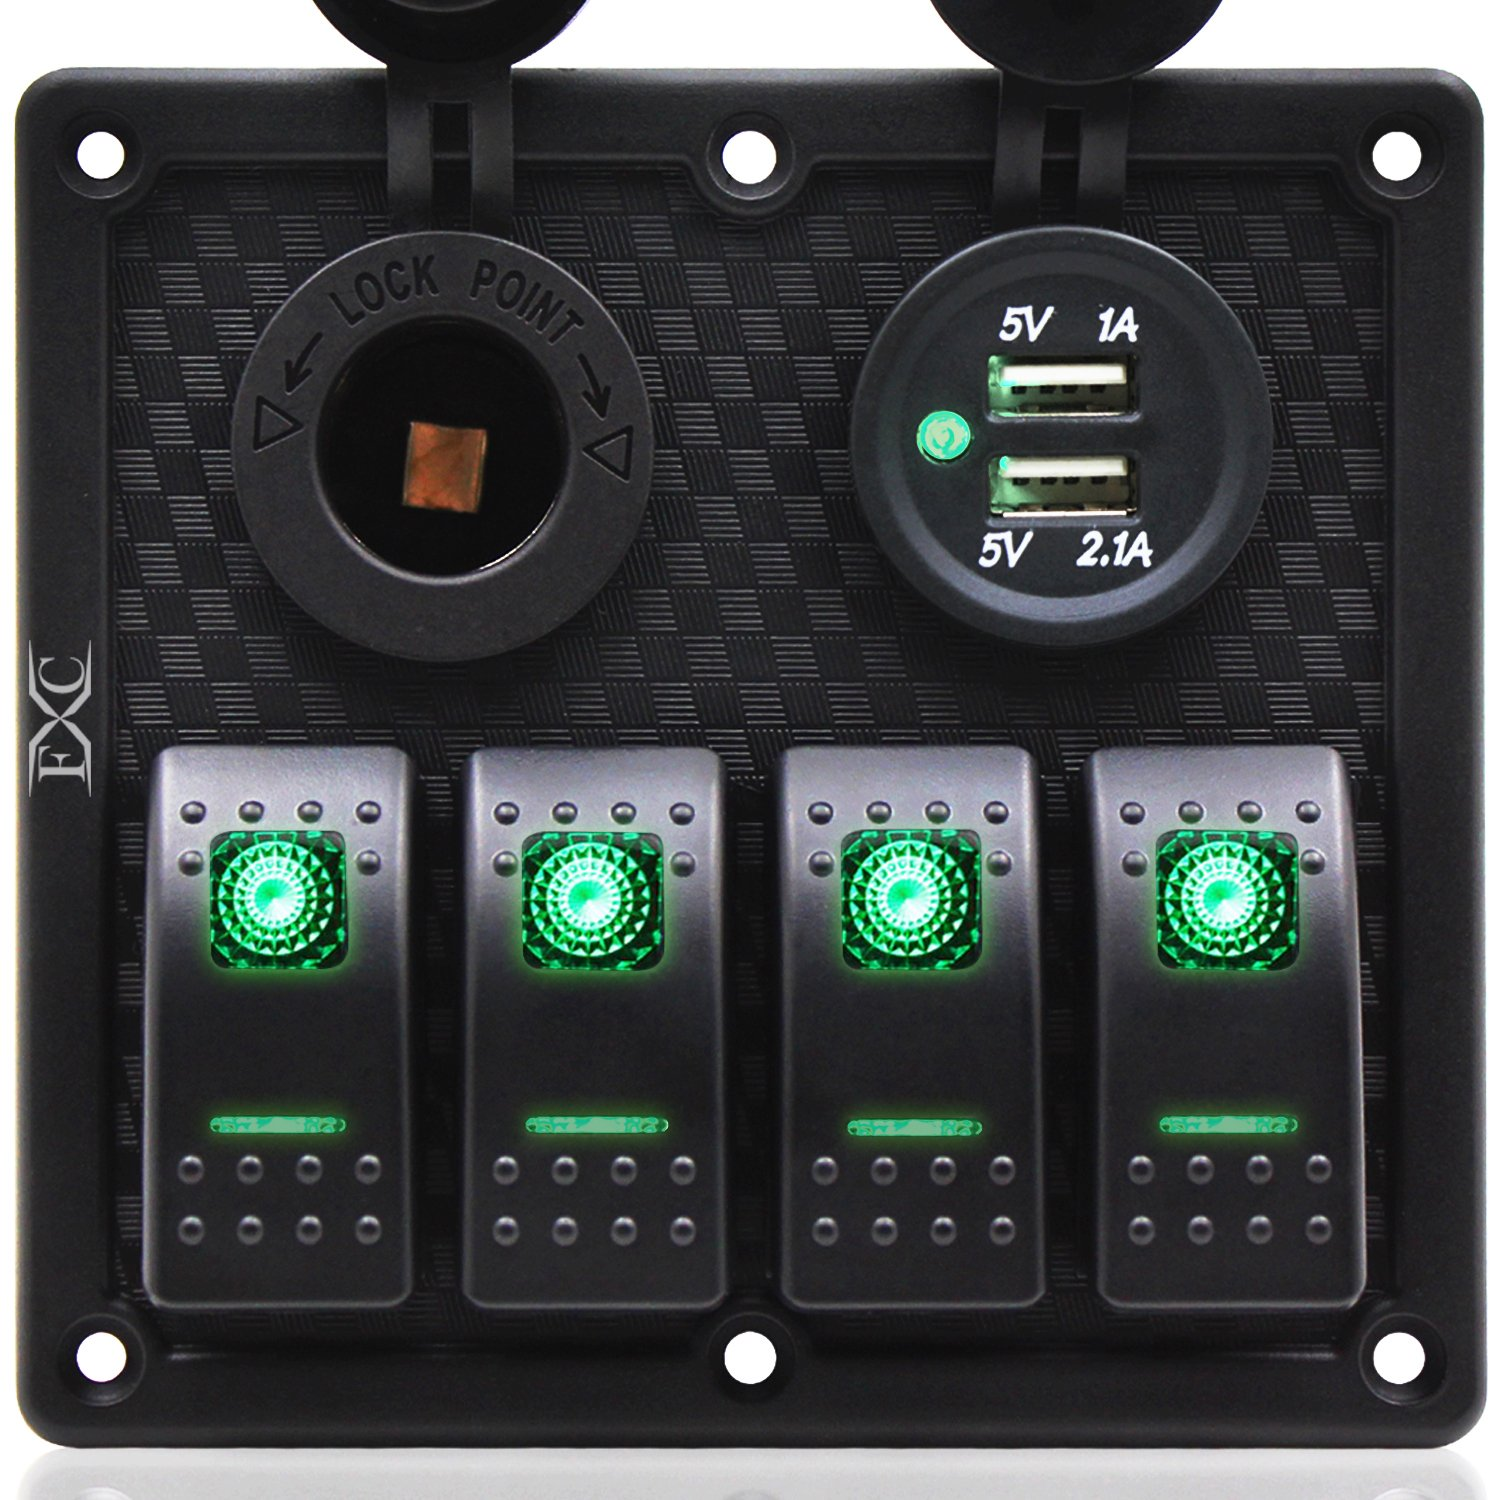 FXC 4 Gang Rocker Switch Panel with Dual USB & Power Socket 12V-24V for Car Marine Boat Trailer by FXC